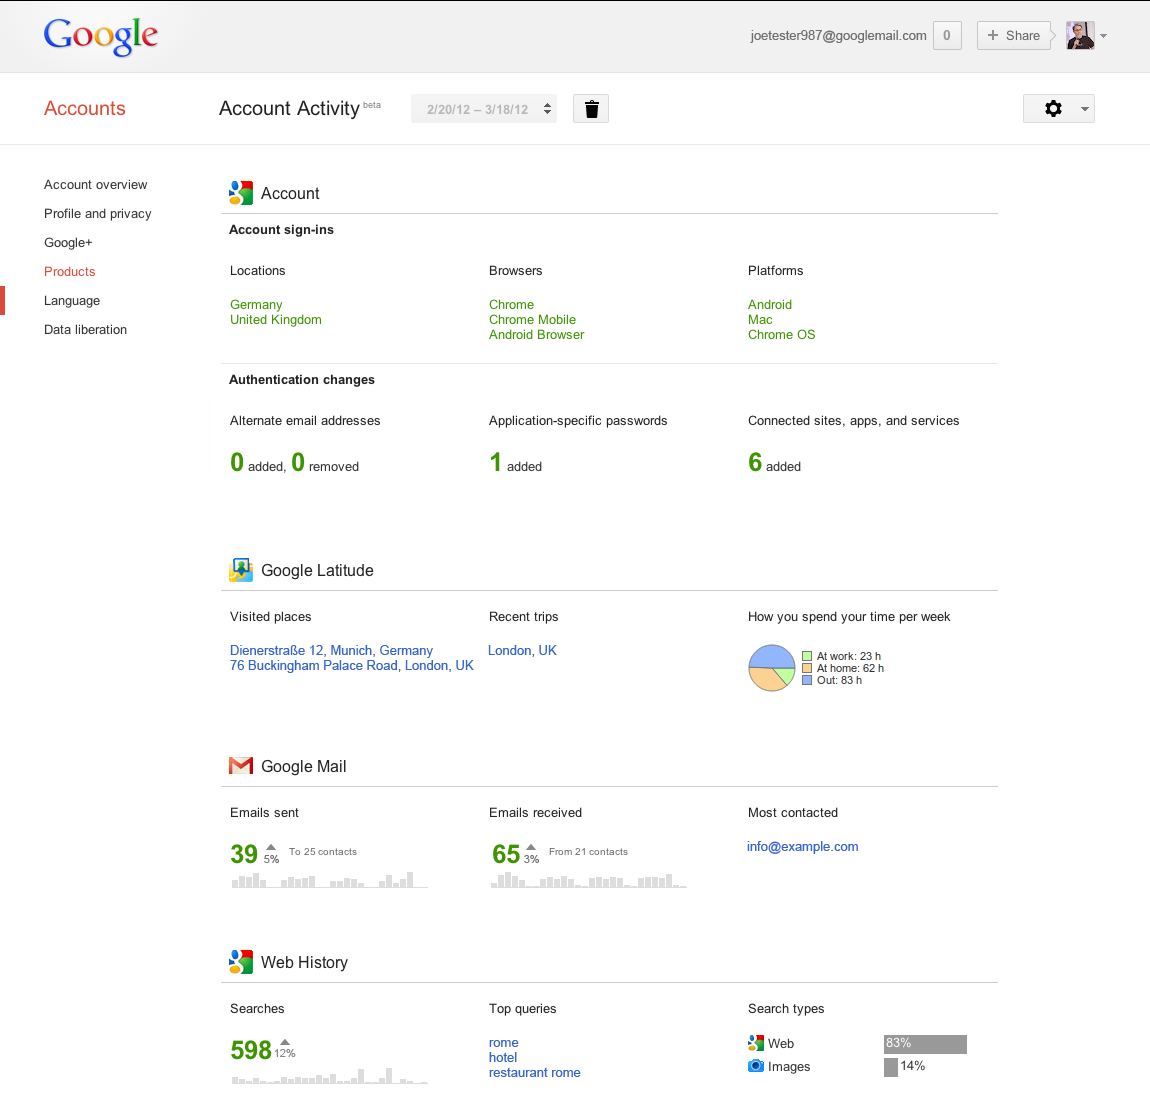 Google Offers Users Monthly Reports on Account Activity | PCWorld